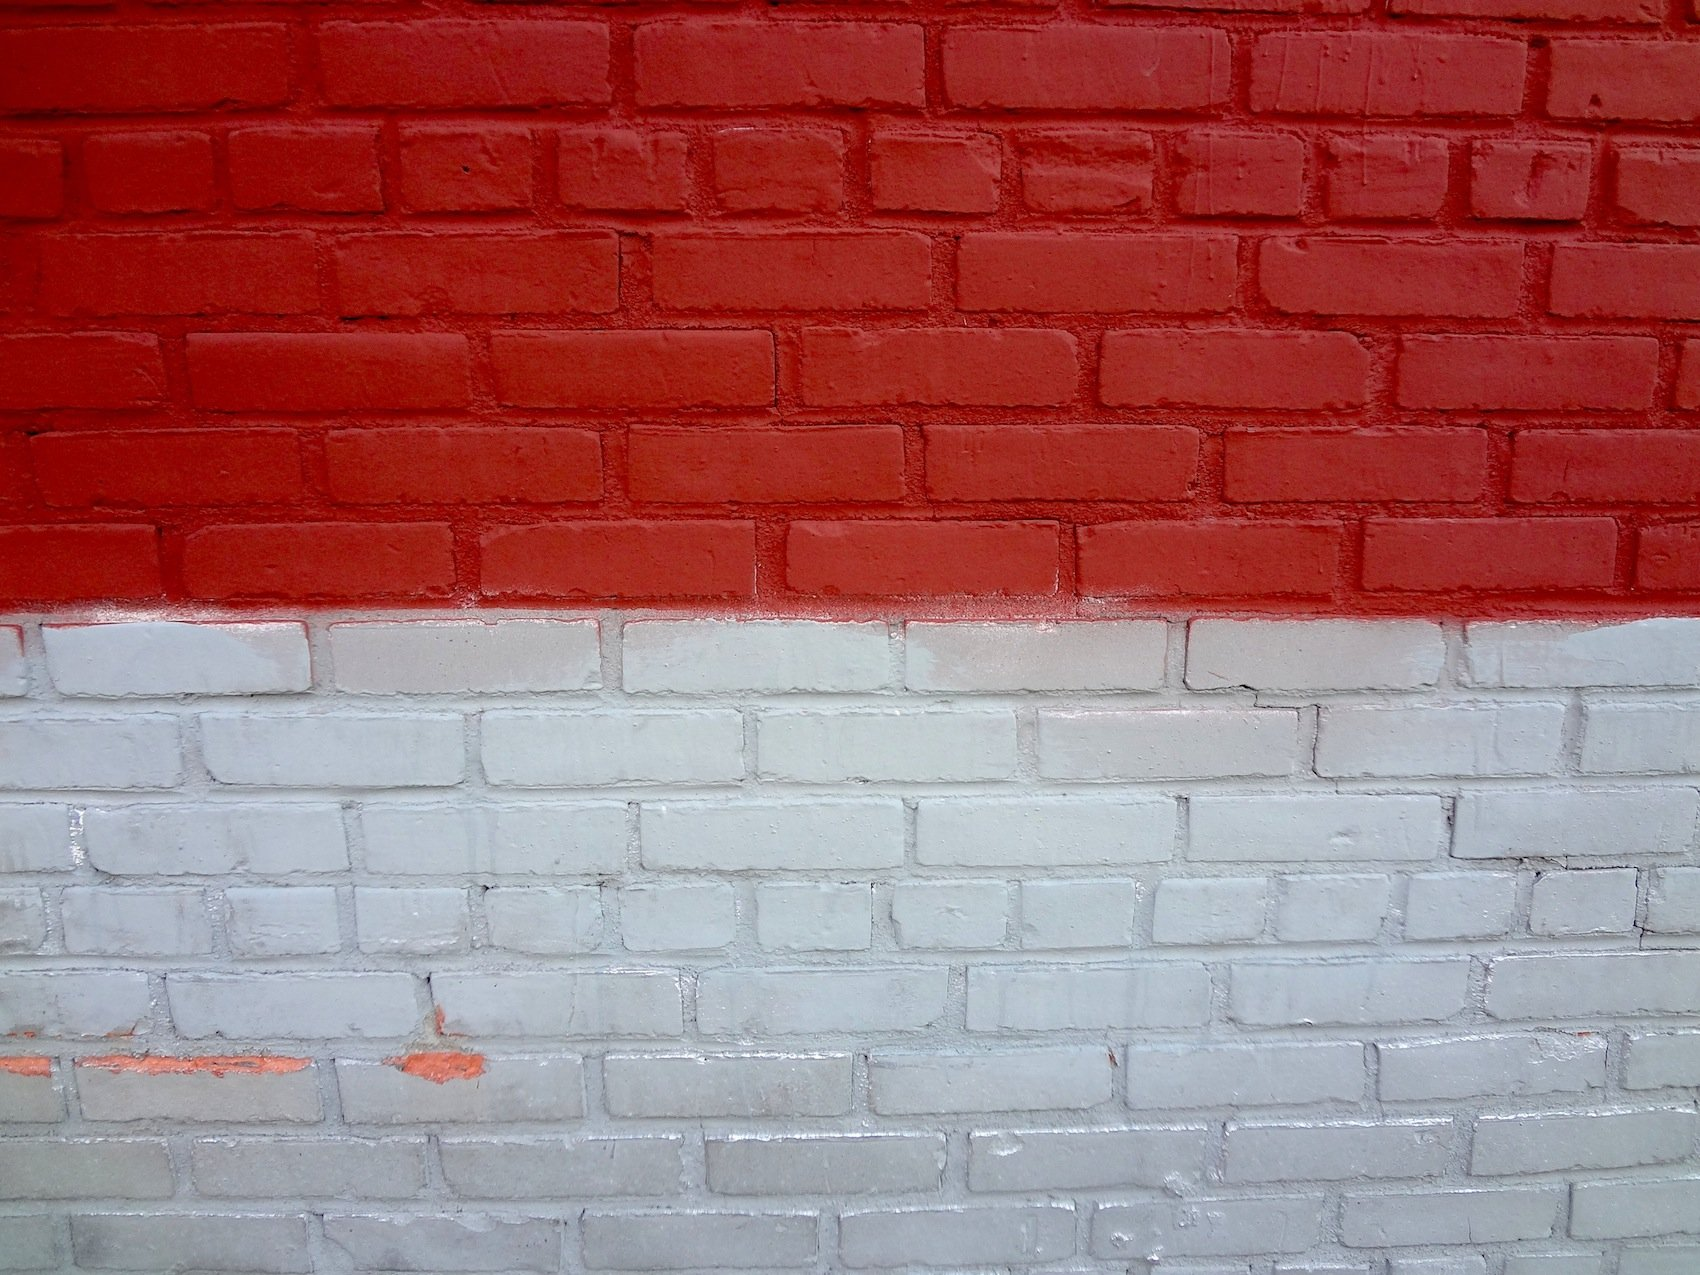 indonesian flag indonesia flags wallpaper 1700x1275 515136